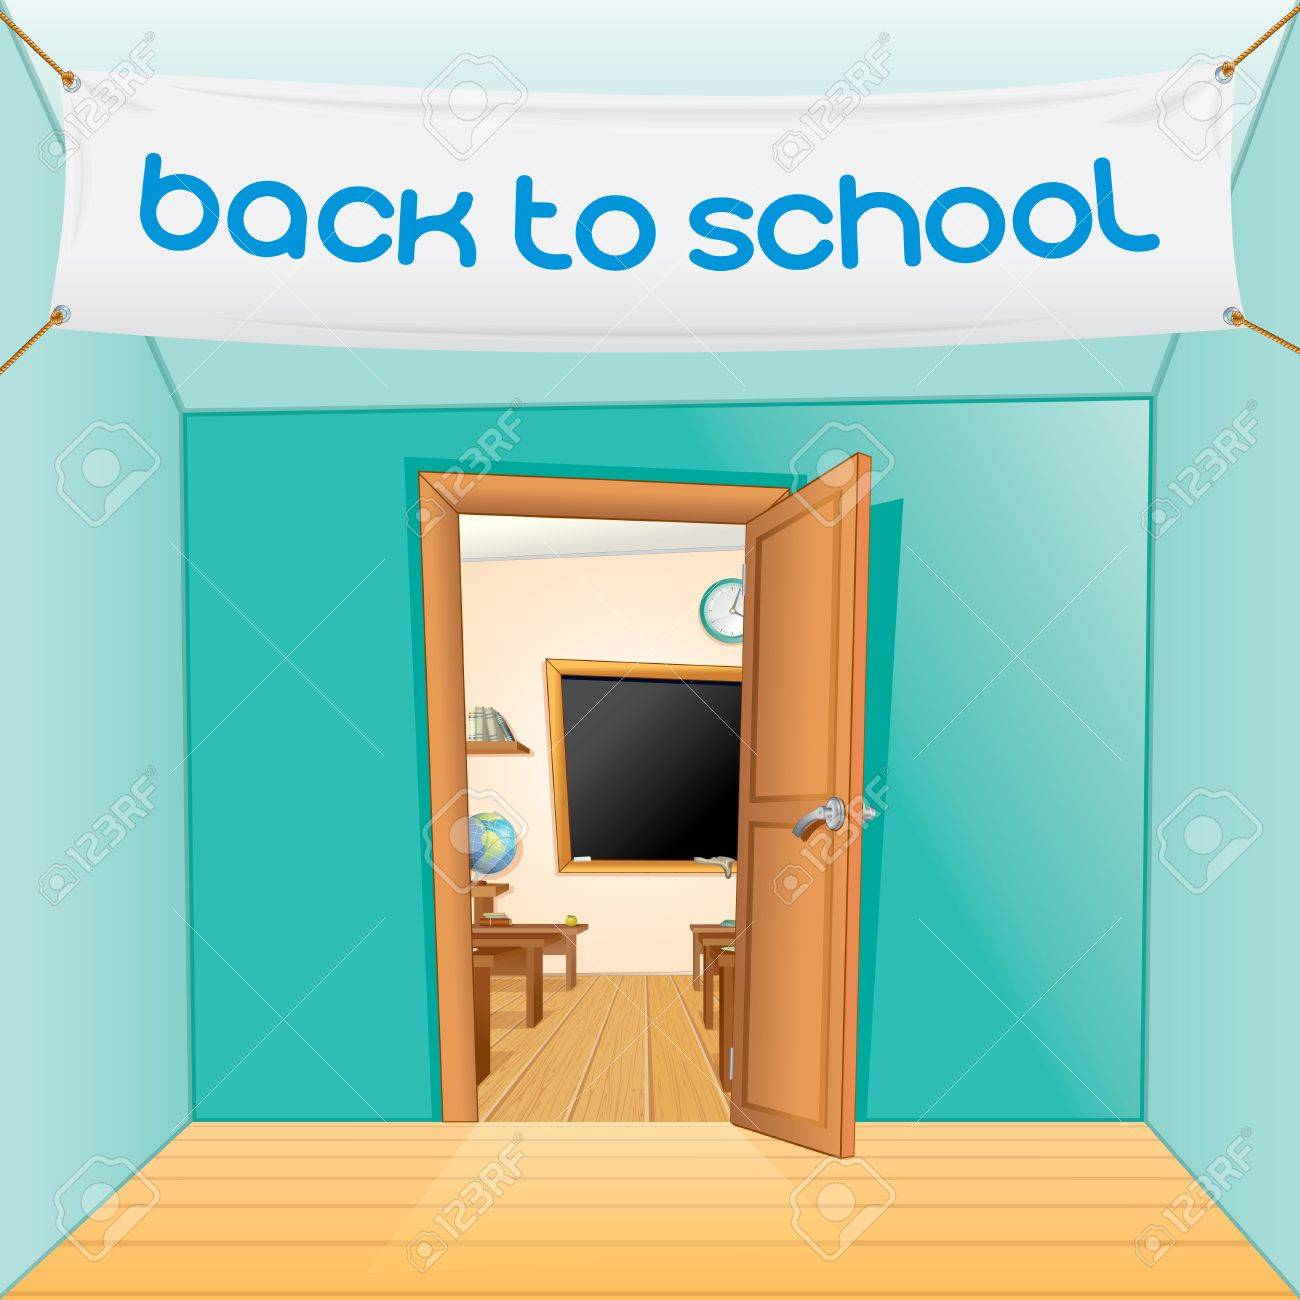 Back to School Vector Cartoon Illustration Stock Vector - 15061224